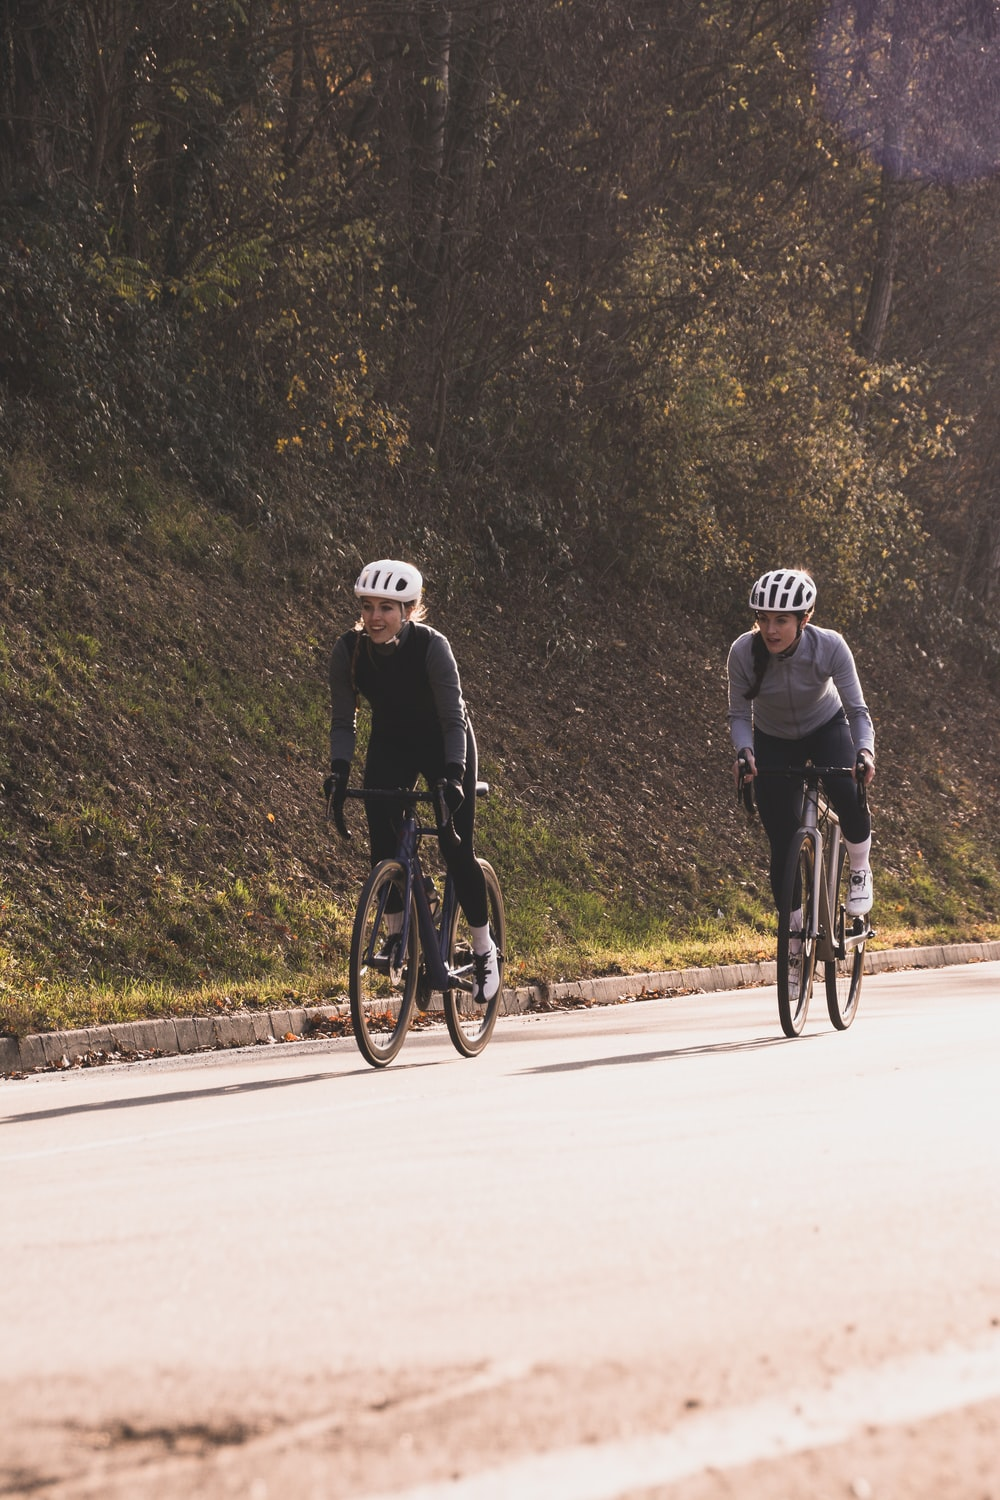 two people riding on bike uphill